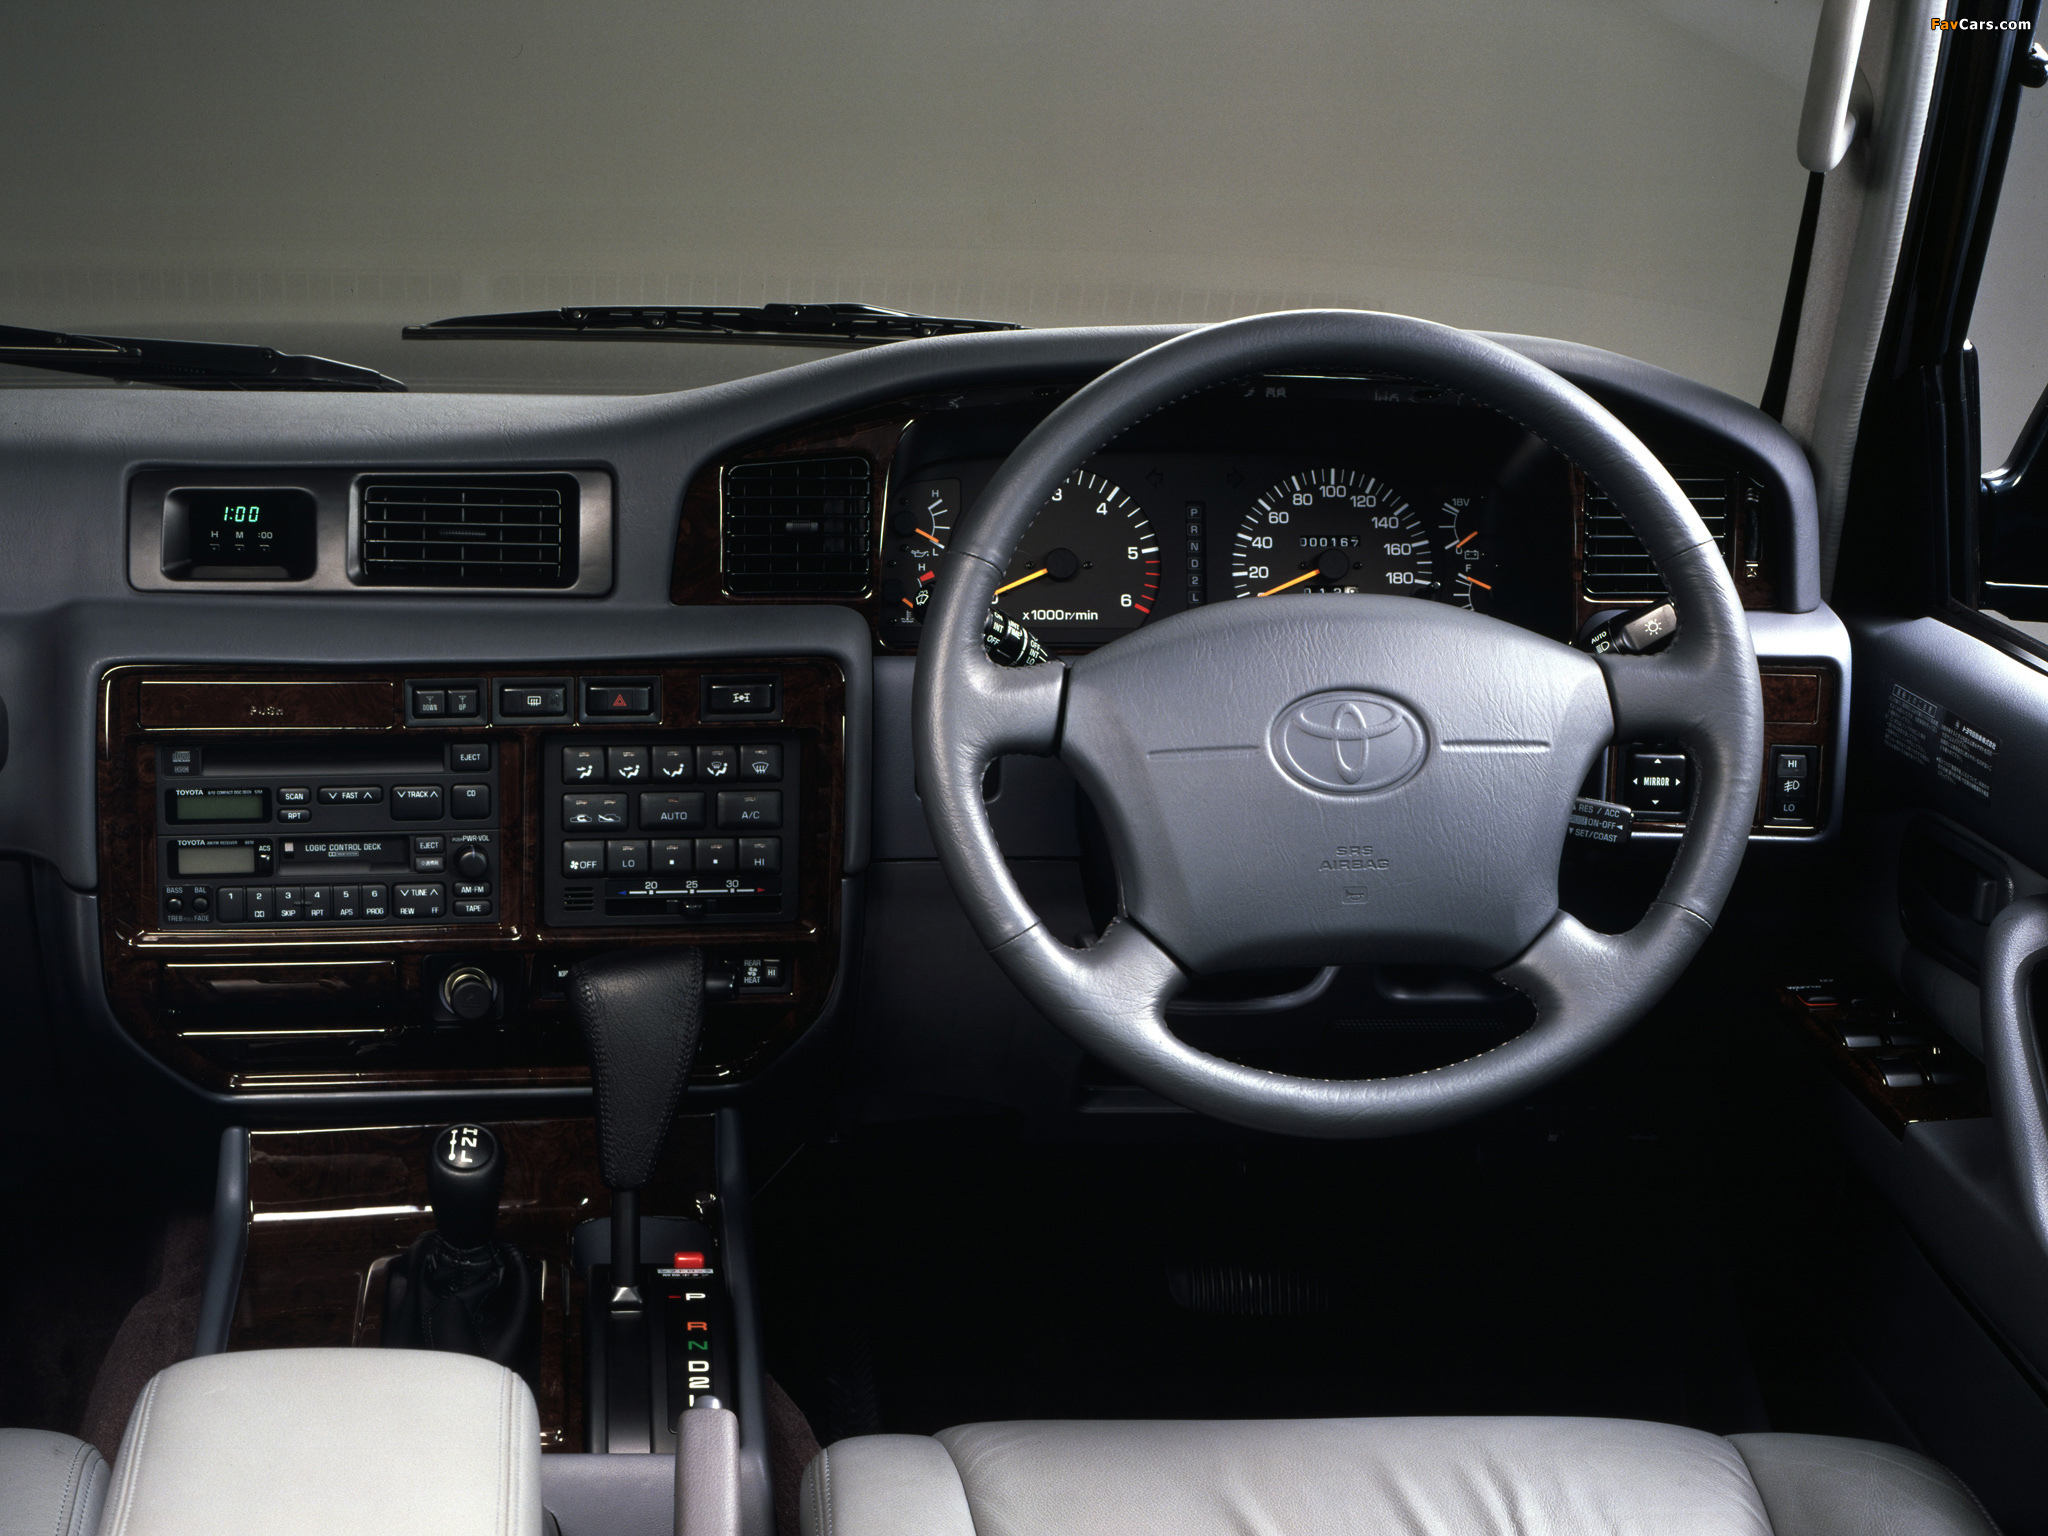 toyota_land-cruiser_1995_photos_6.jpg